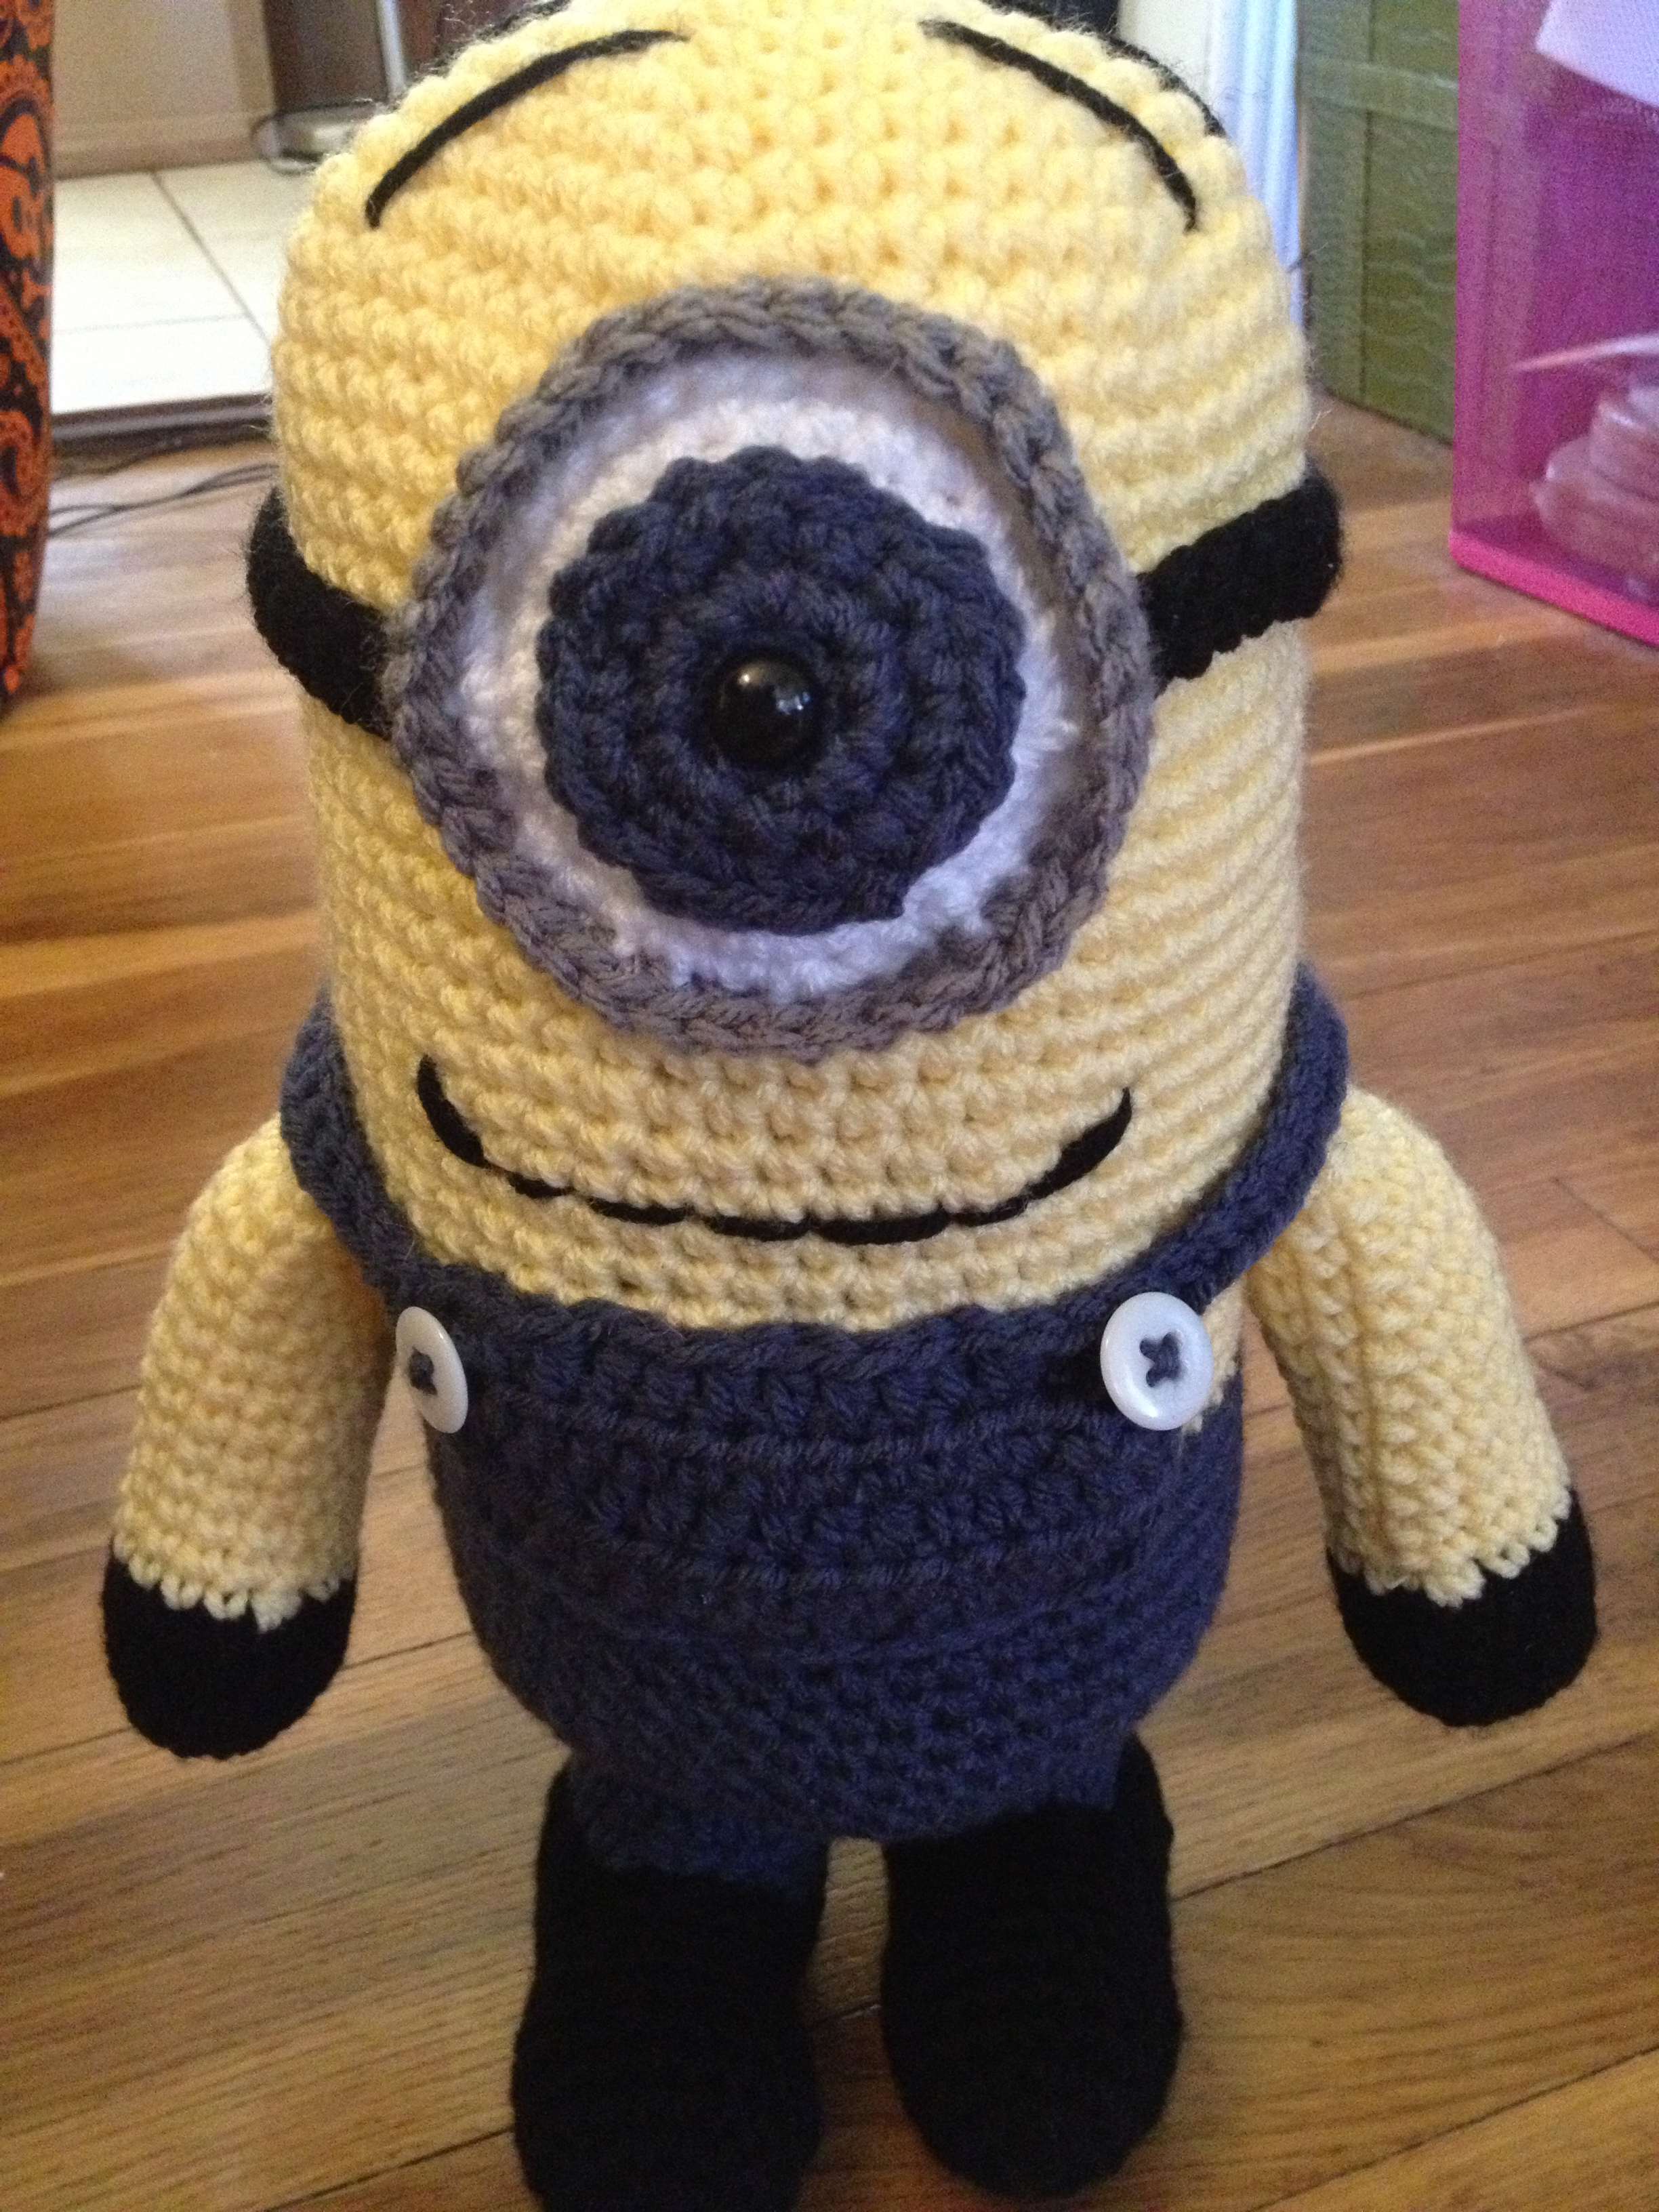 Full size Minion